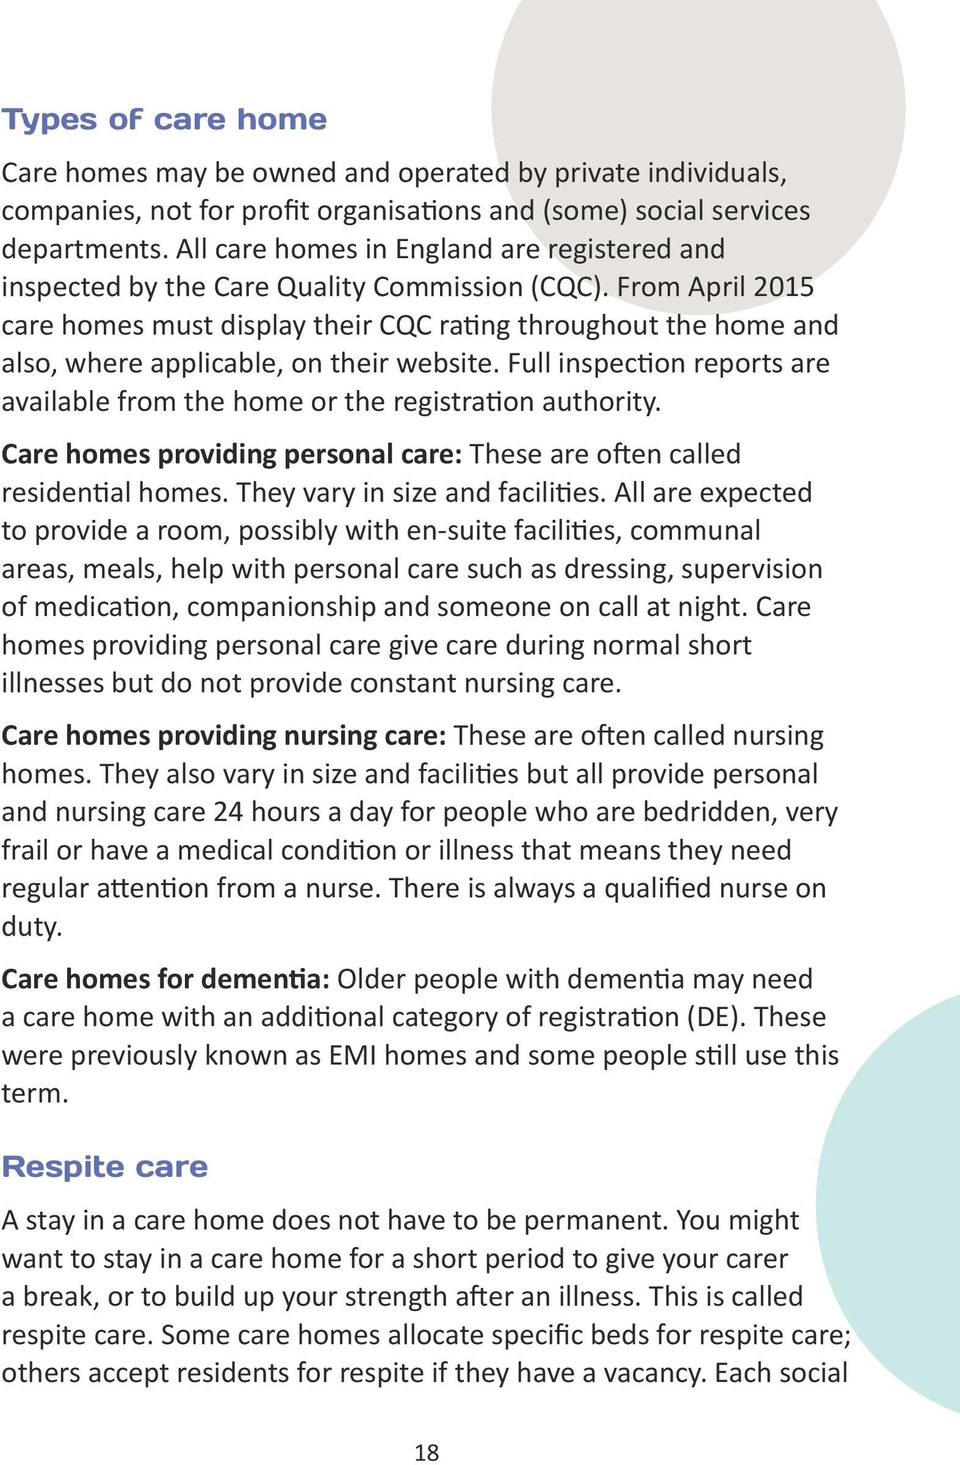 From April 2015 care homes must display their CQC rating throughout the home and also, where applicable, on their website.